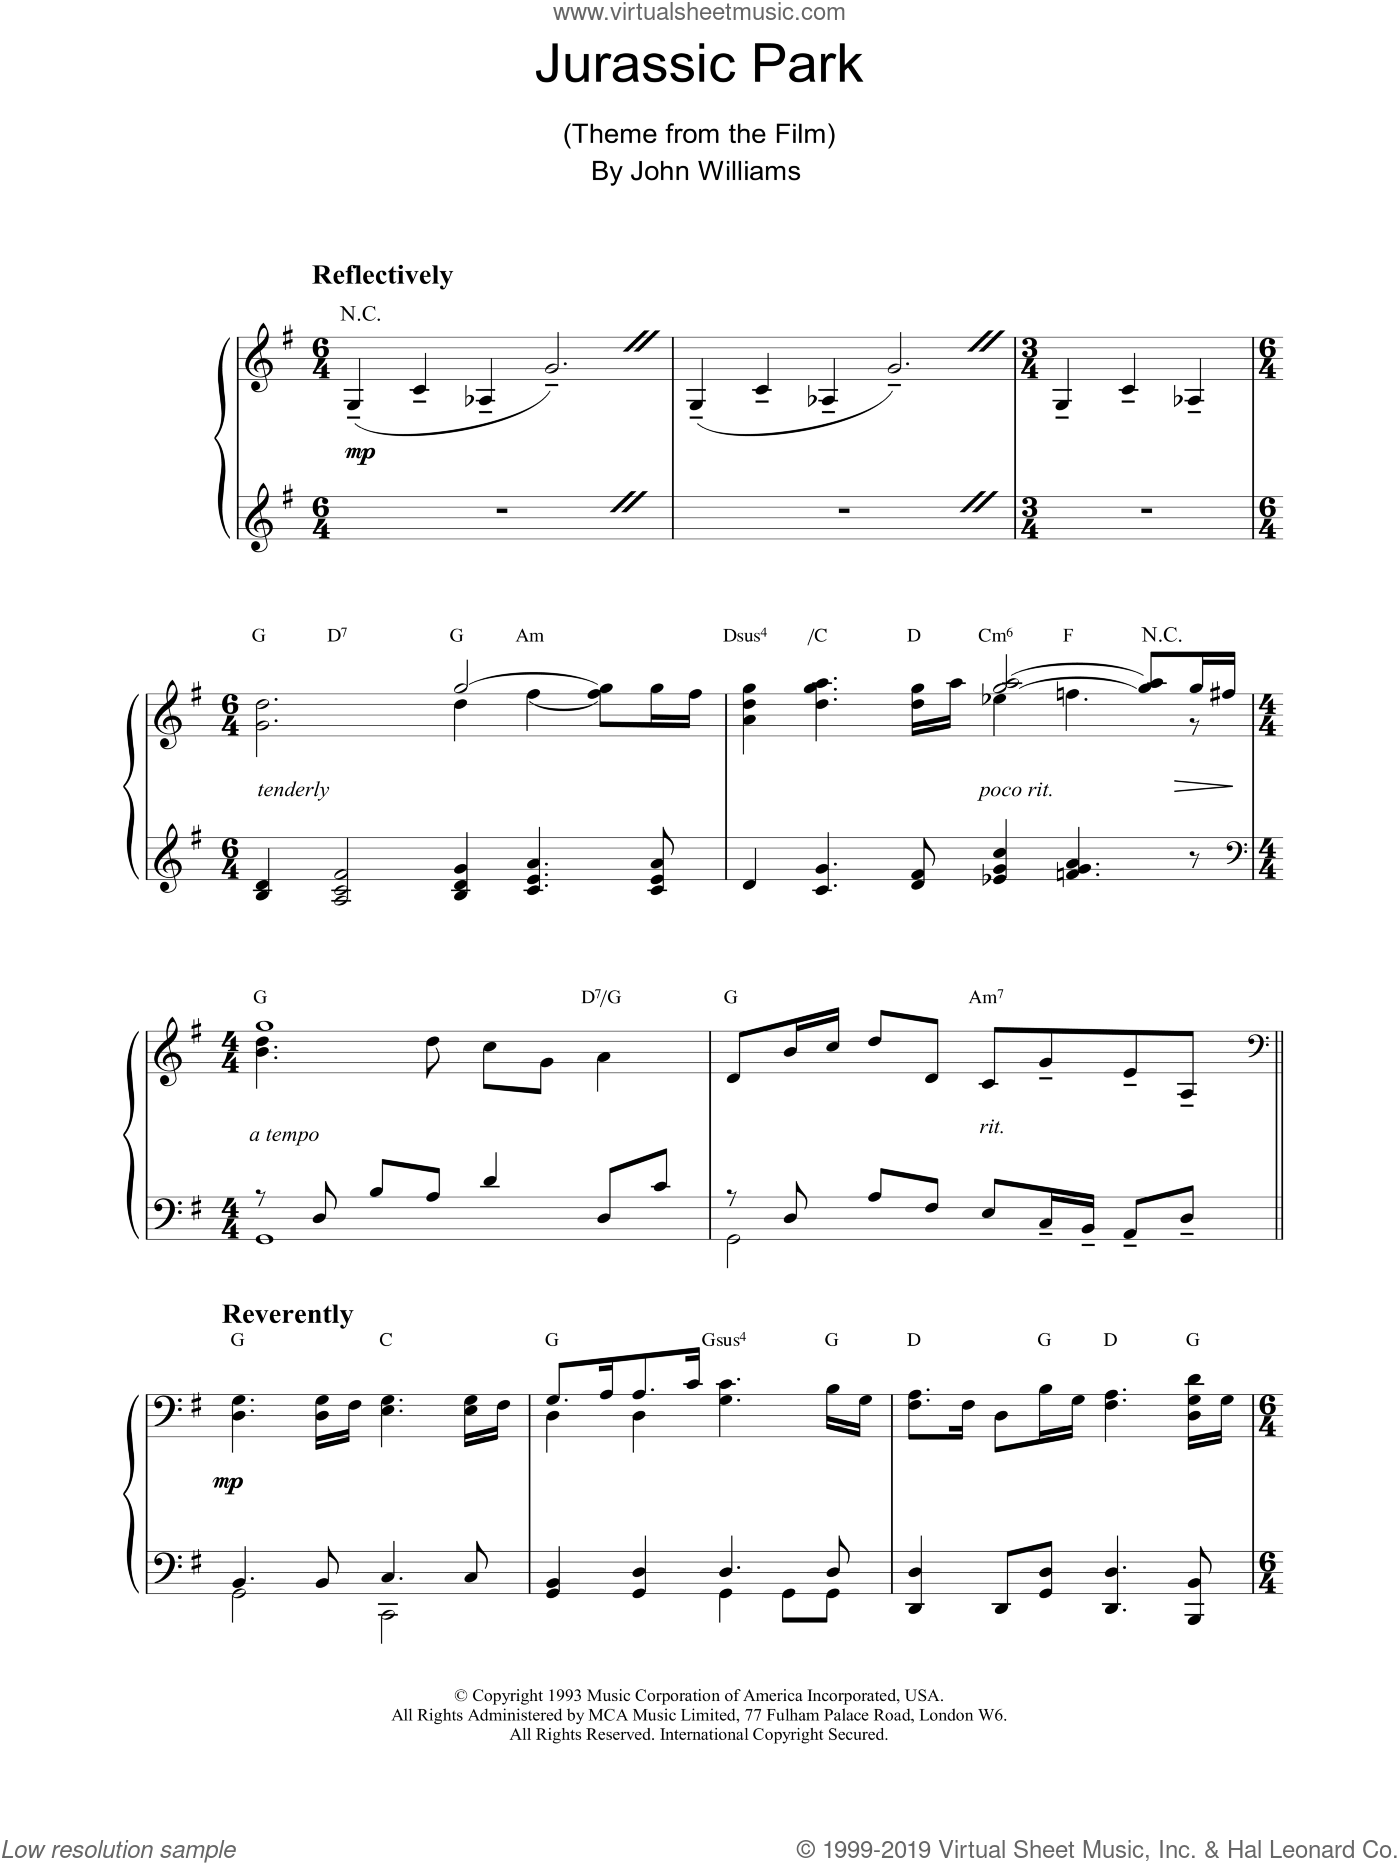 Jurassic Park sheet music for piano solo by John Williams, intermediate skill level